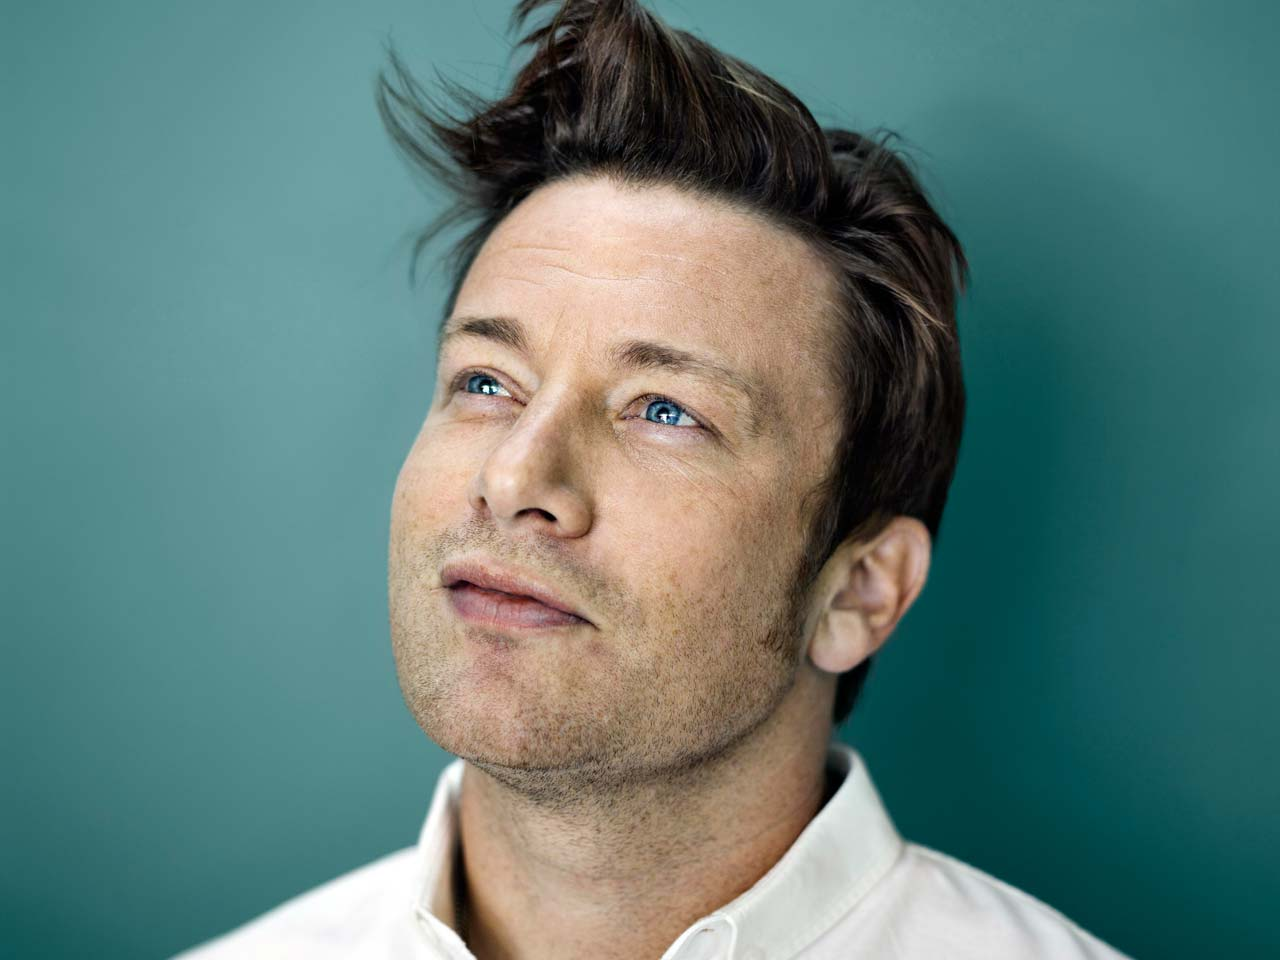 Jamie Oliver photographed by Paul Stuart